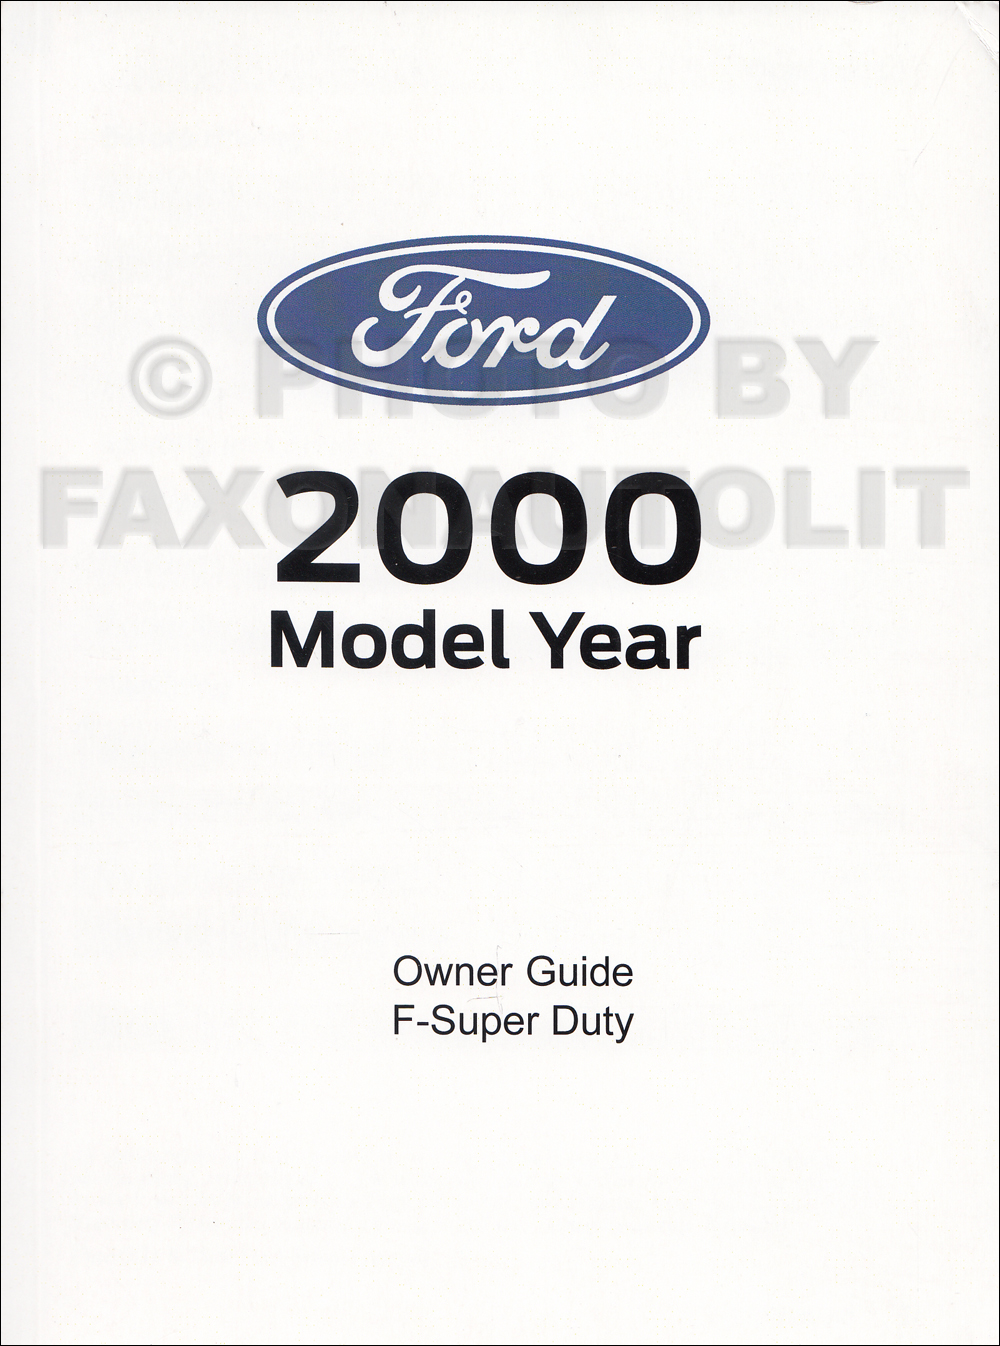 2000 Ford F-250 thru F-550 Owner's Manual Factory Reprint